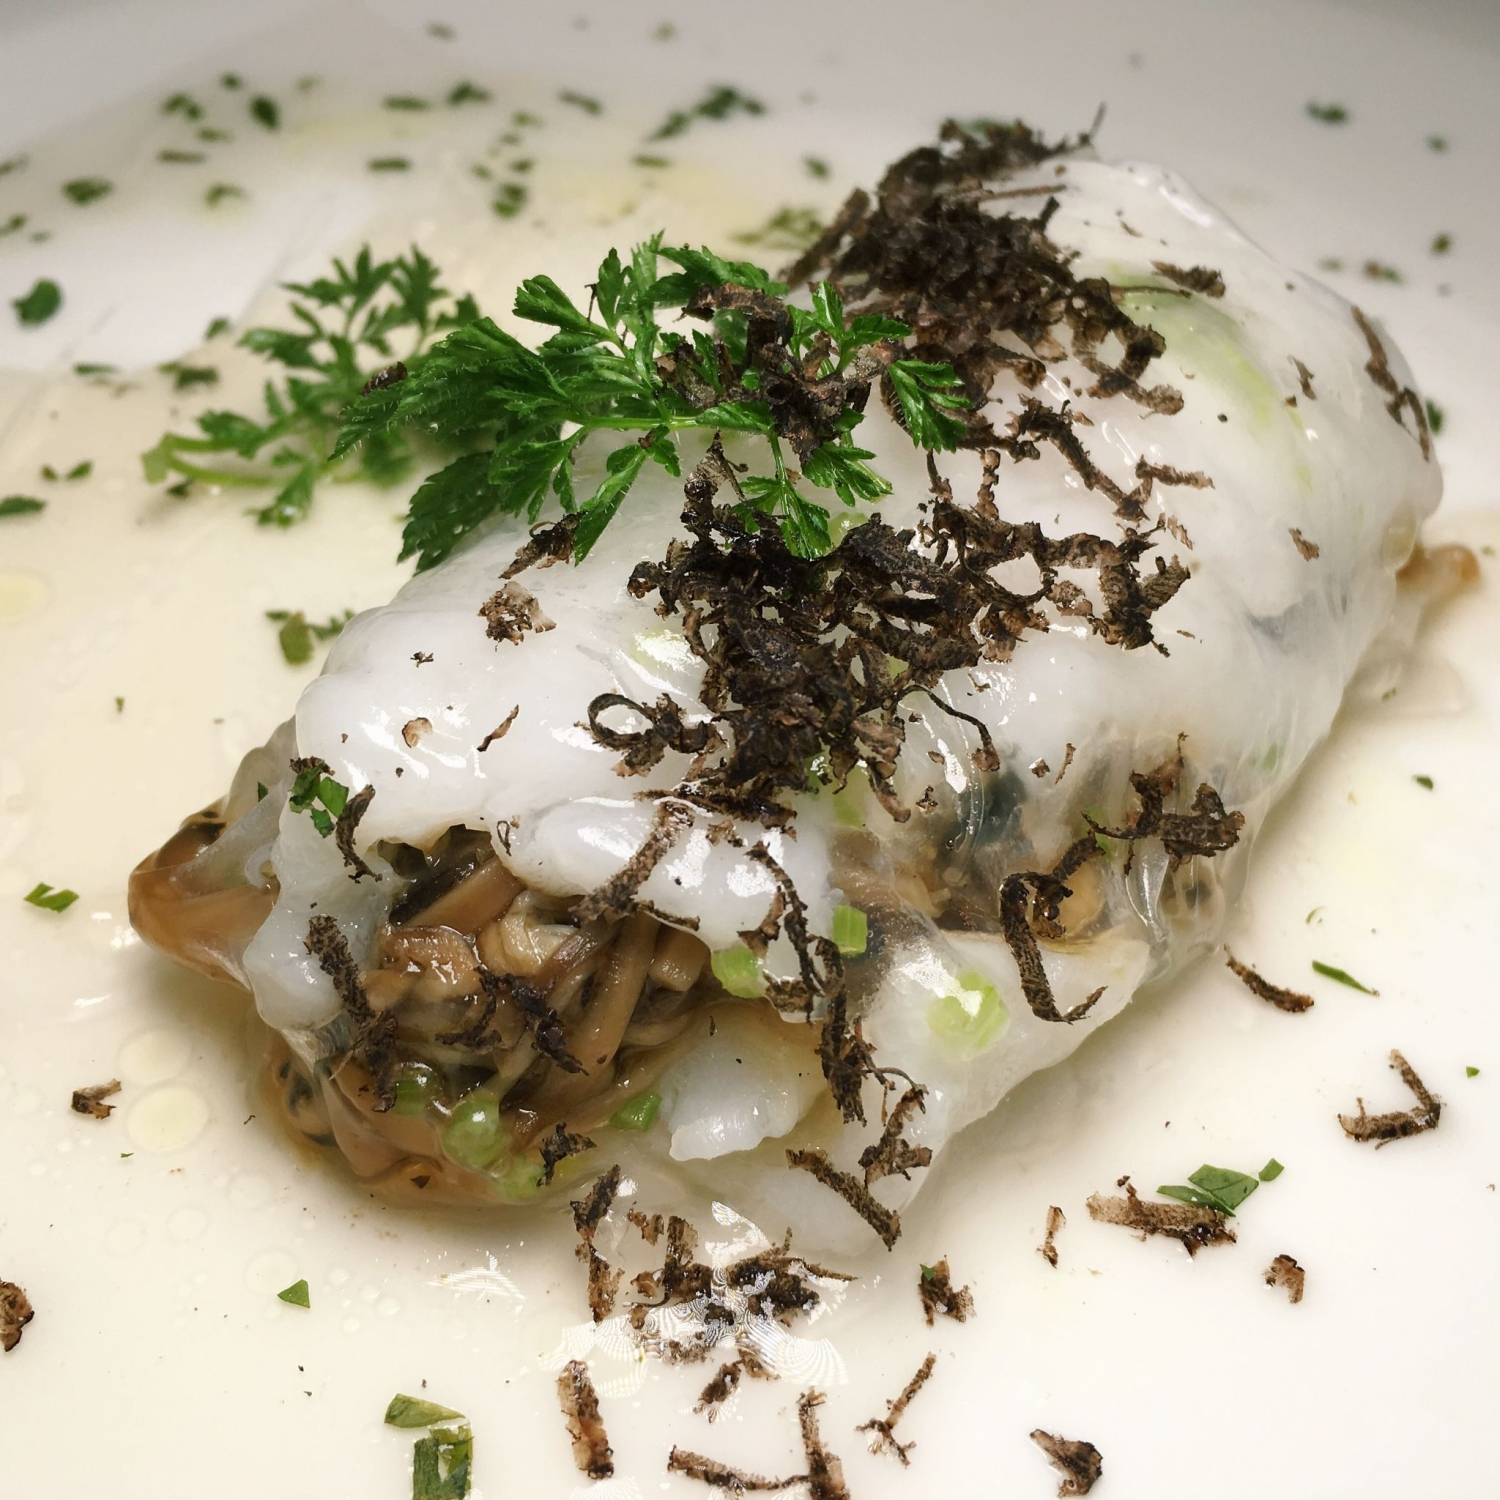 Steamed Cod in Paper Roll - Jiang-Nan Chun